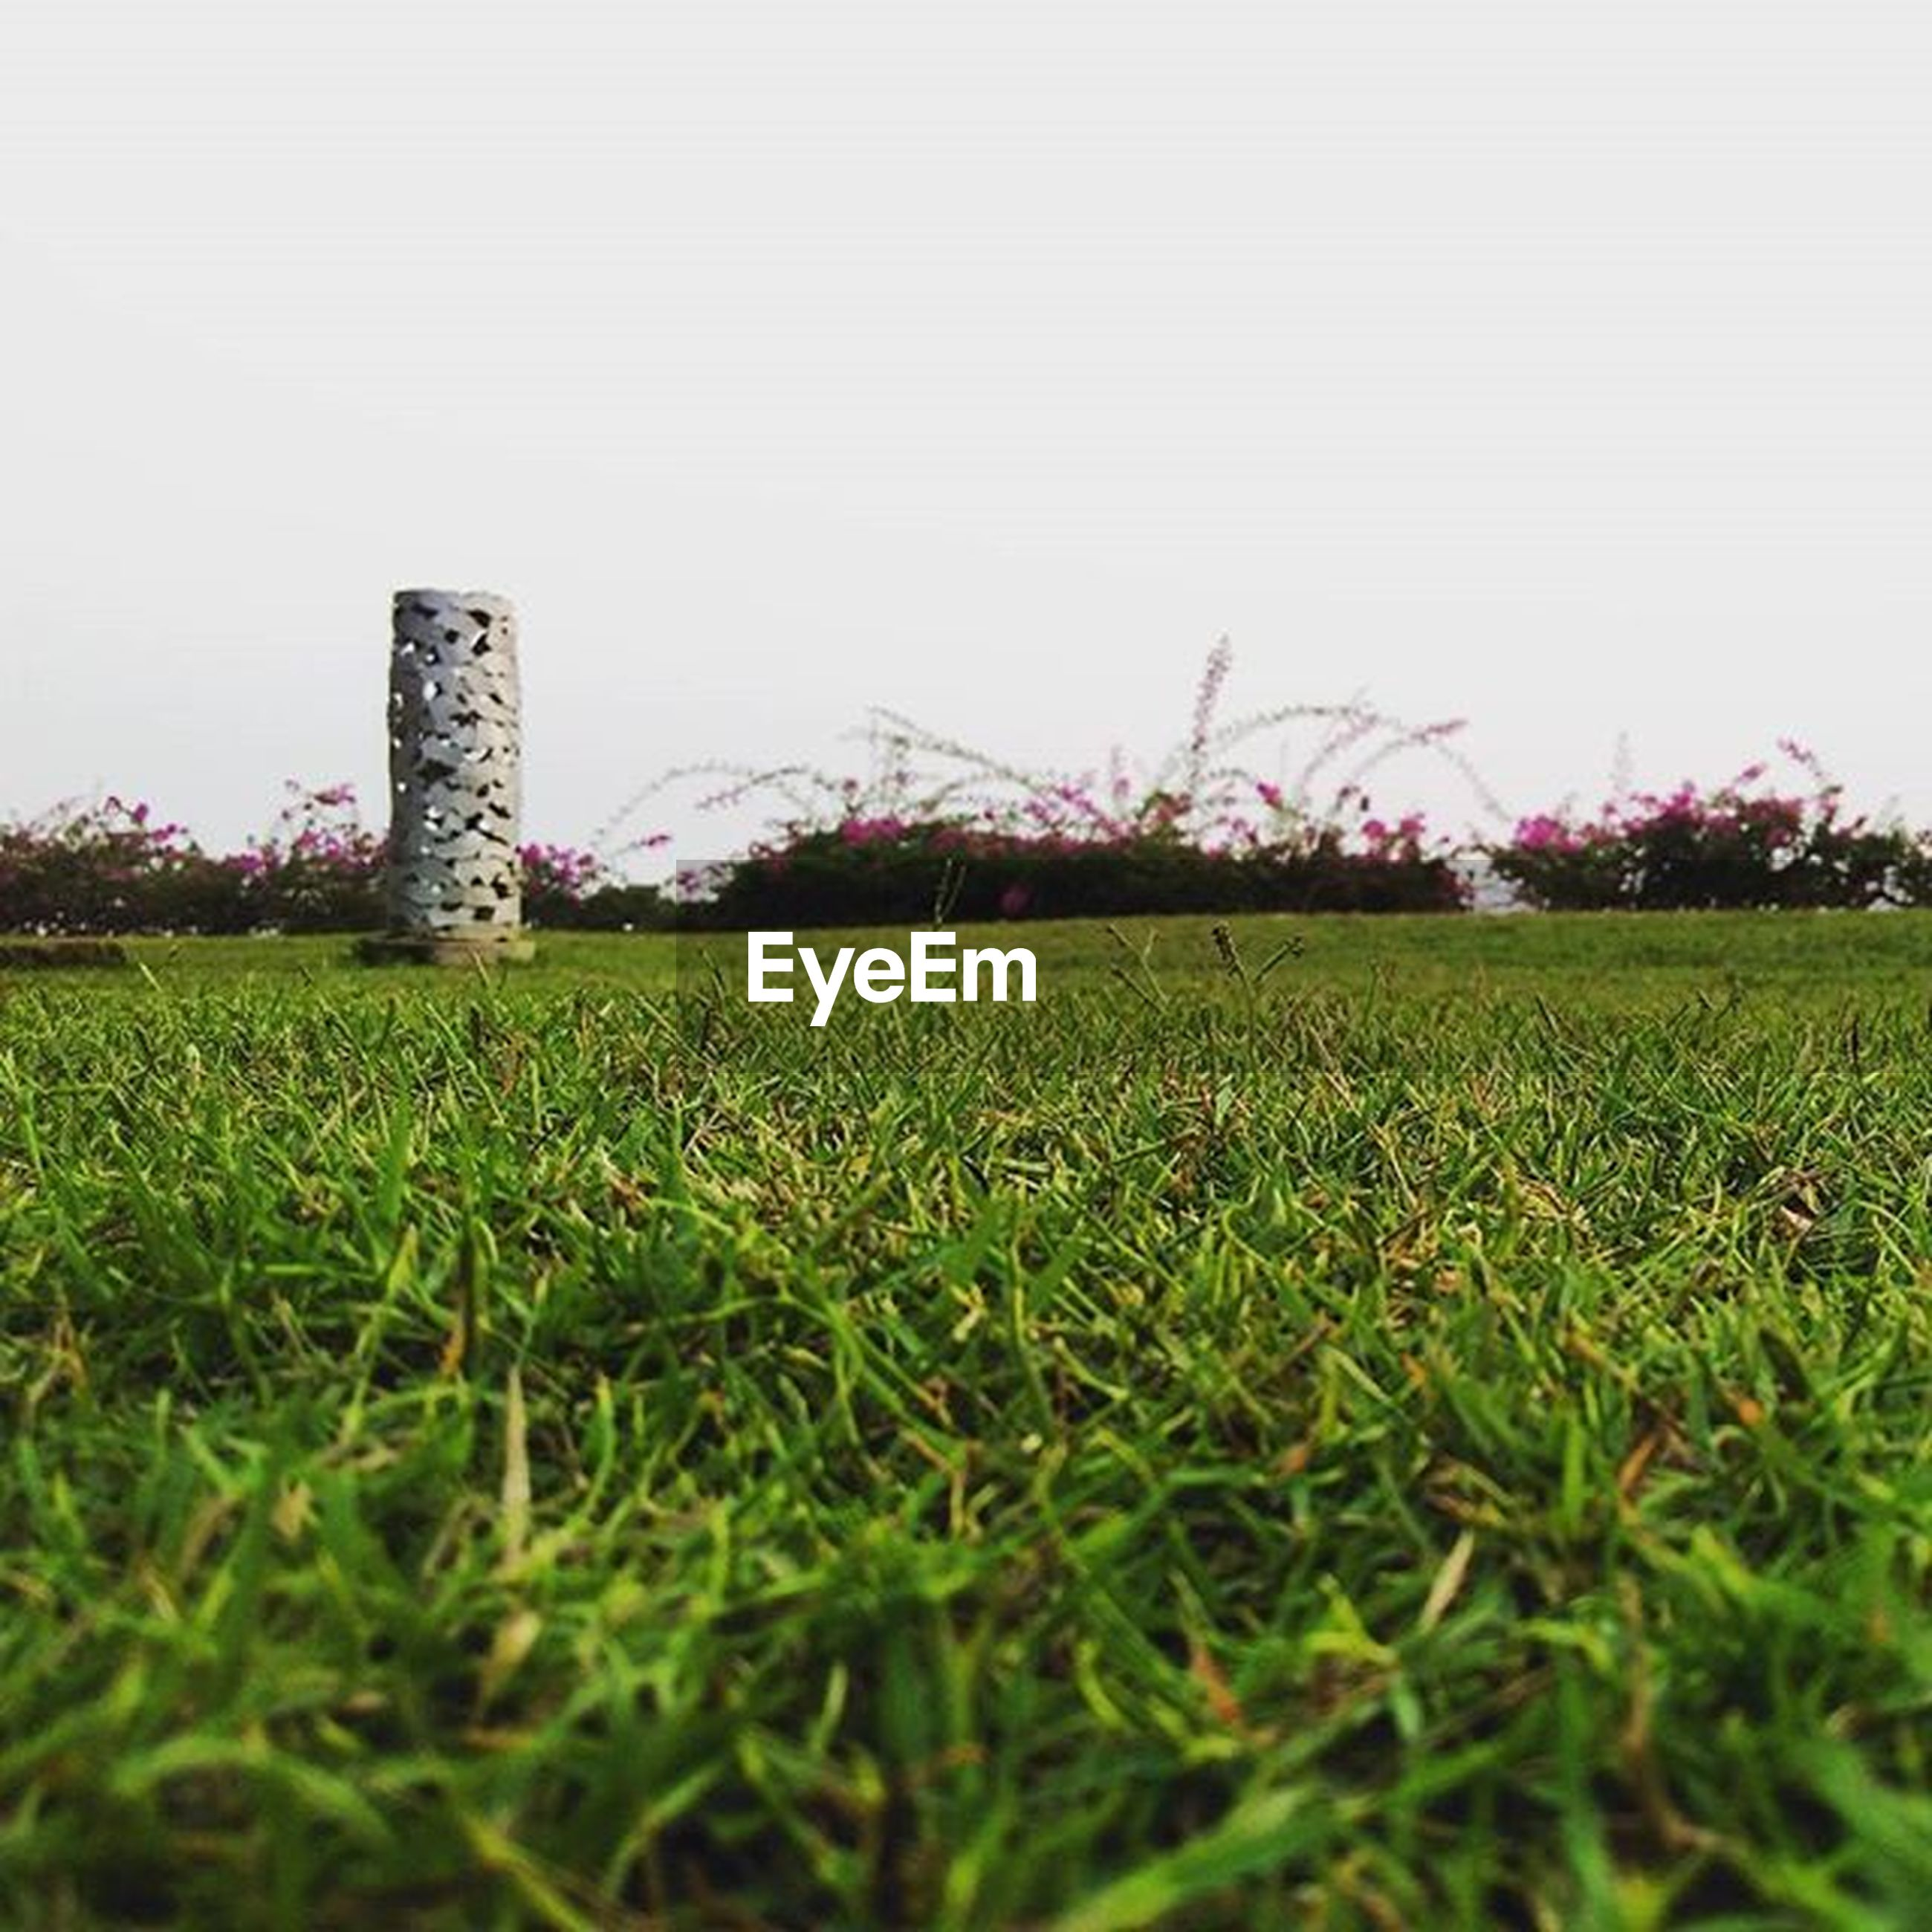 grass, field, clear sky, built structure, architecture, green color, copy space, building exterior, grassy, growth, landscape, rural scene, nature, day, old, outdoors, no people, agriculture, tranquility, lawn